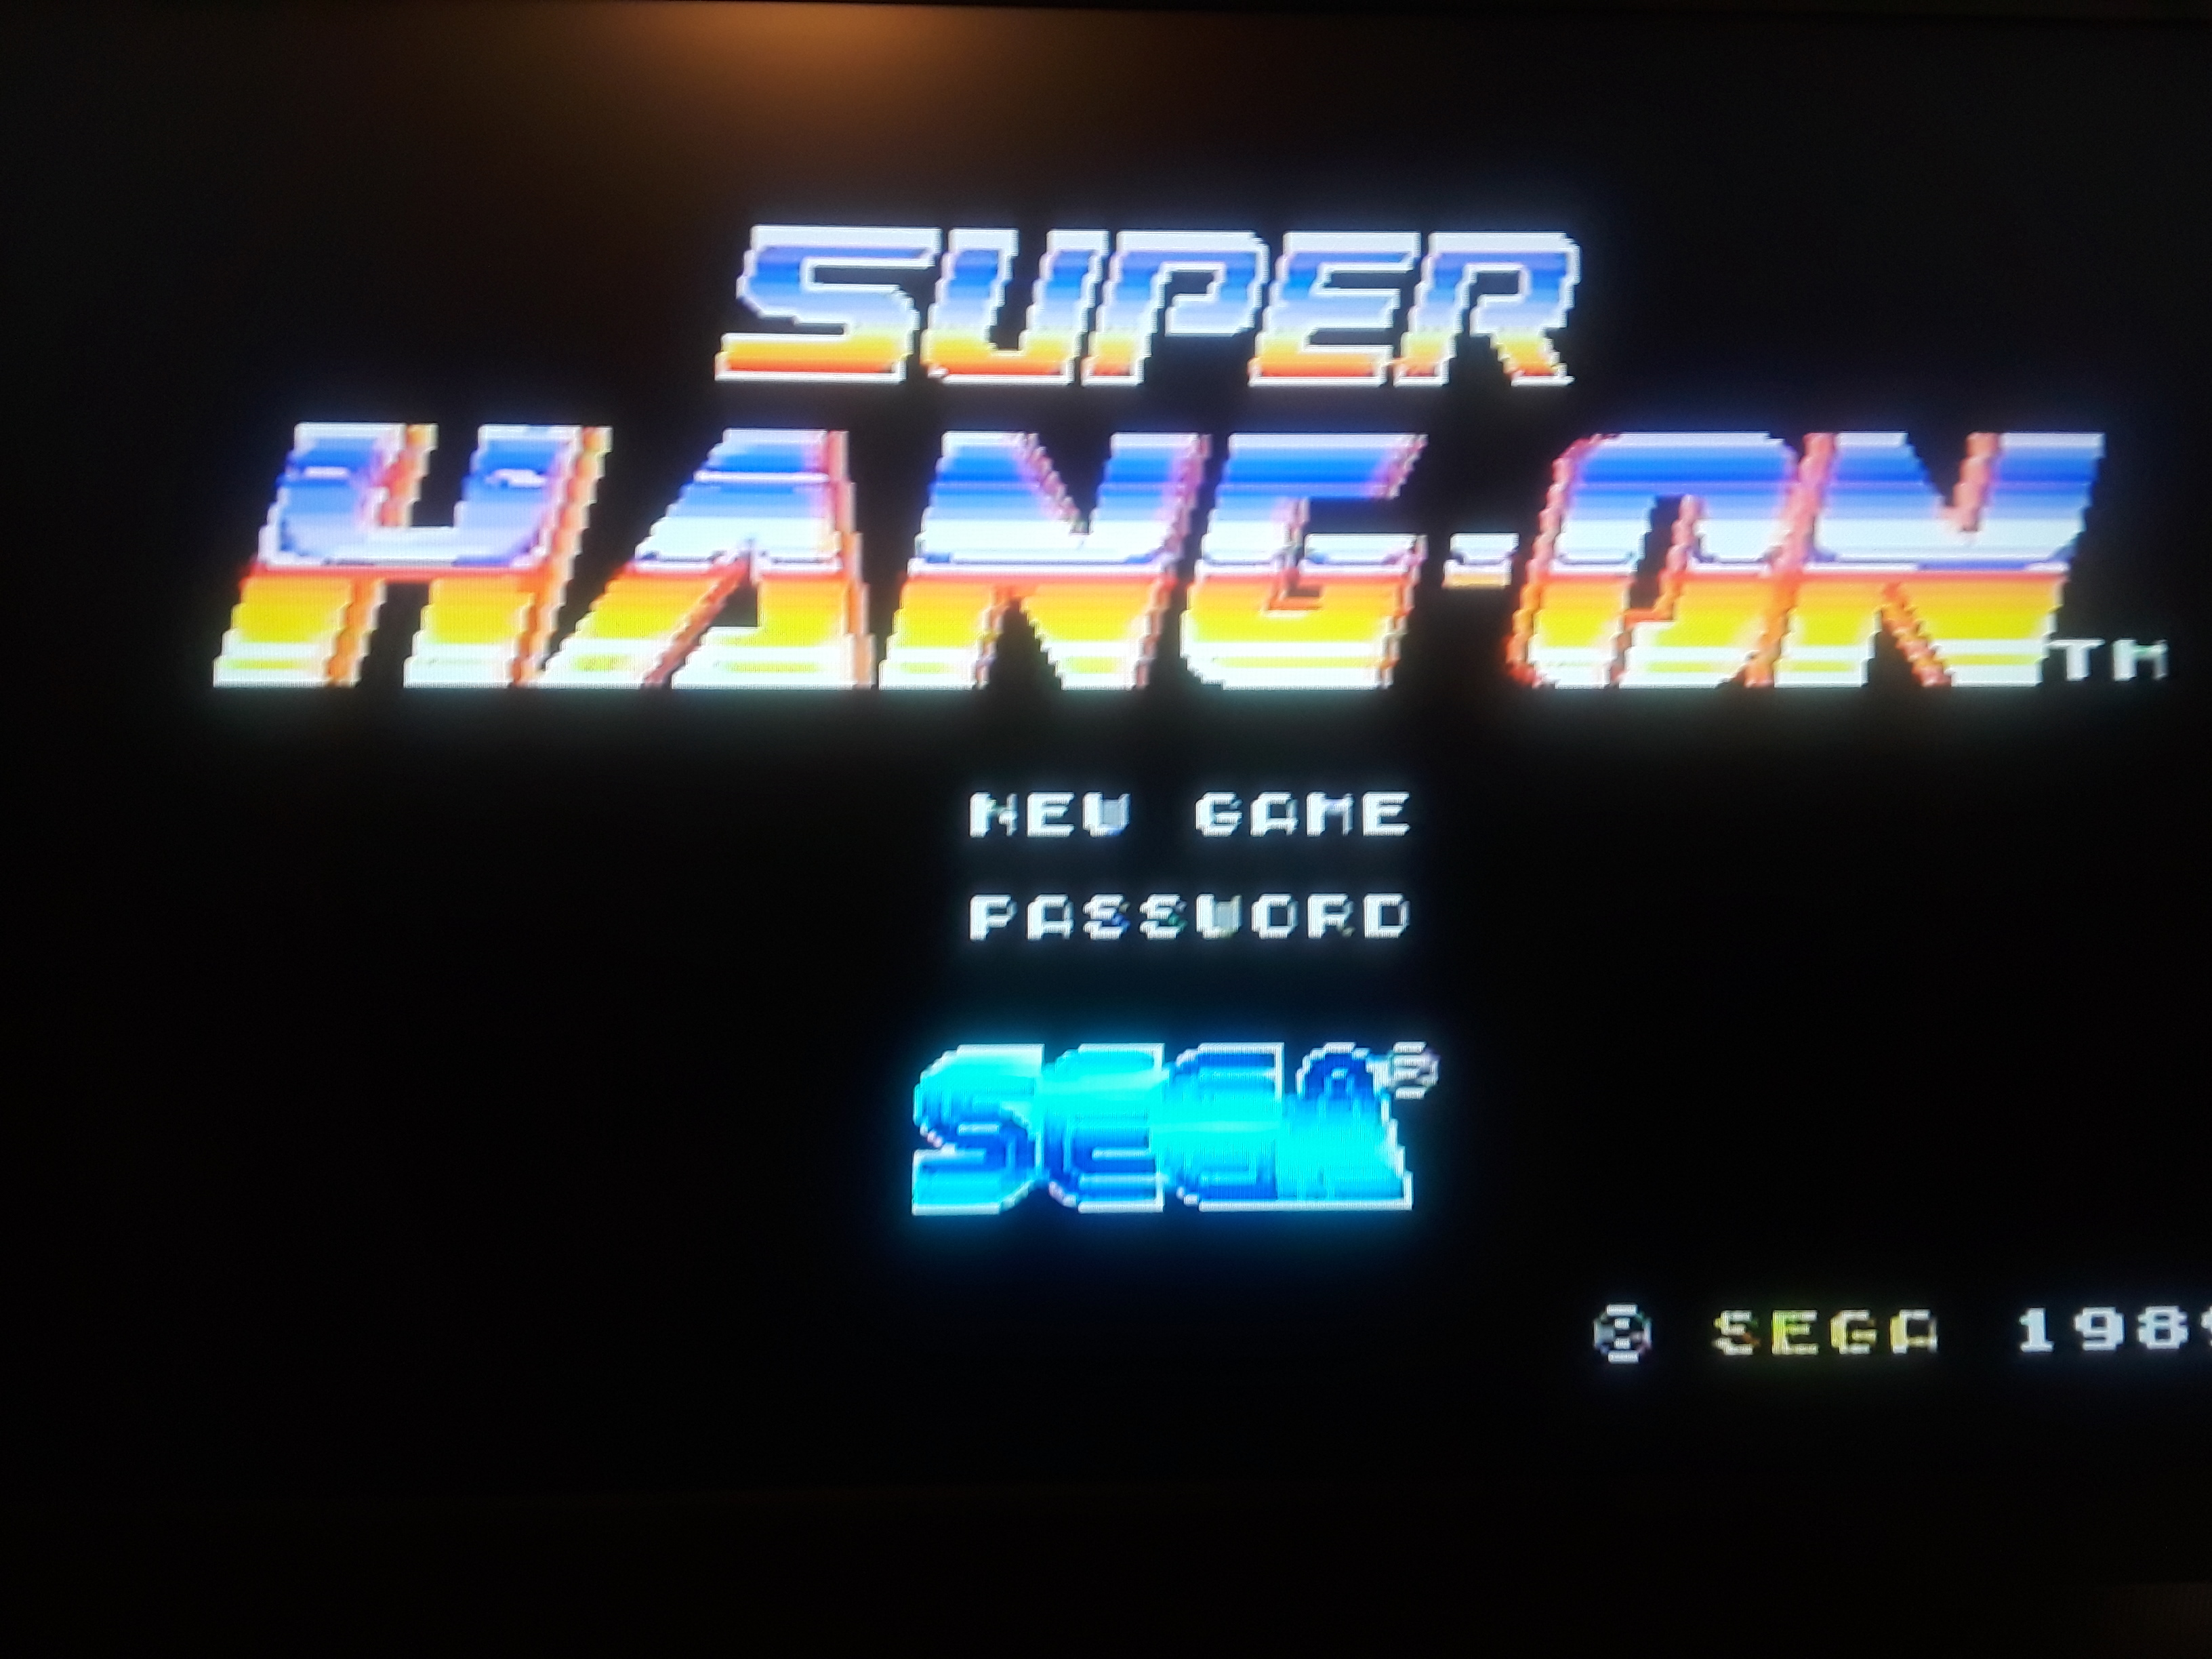 Super Hang-On [Advanced Course] 3,593,500 points